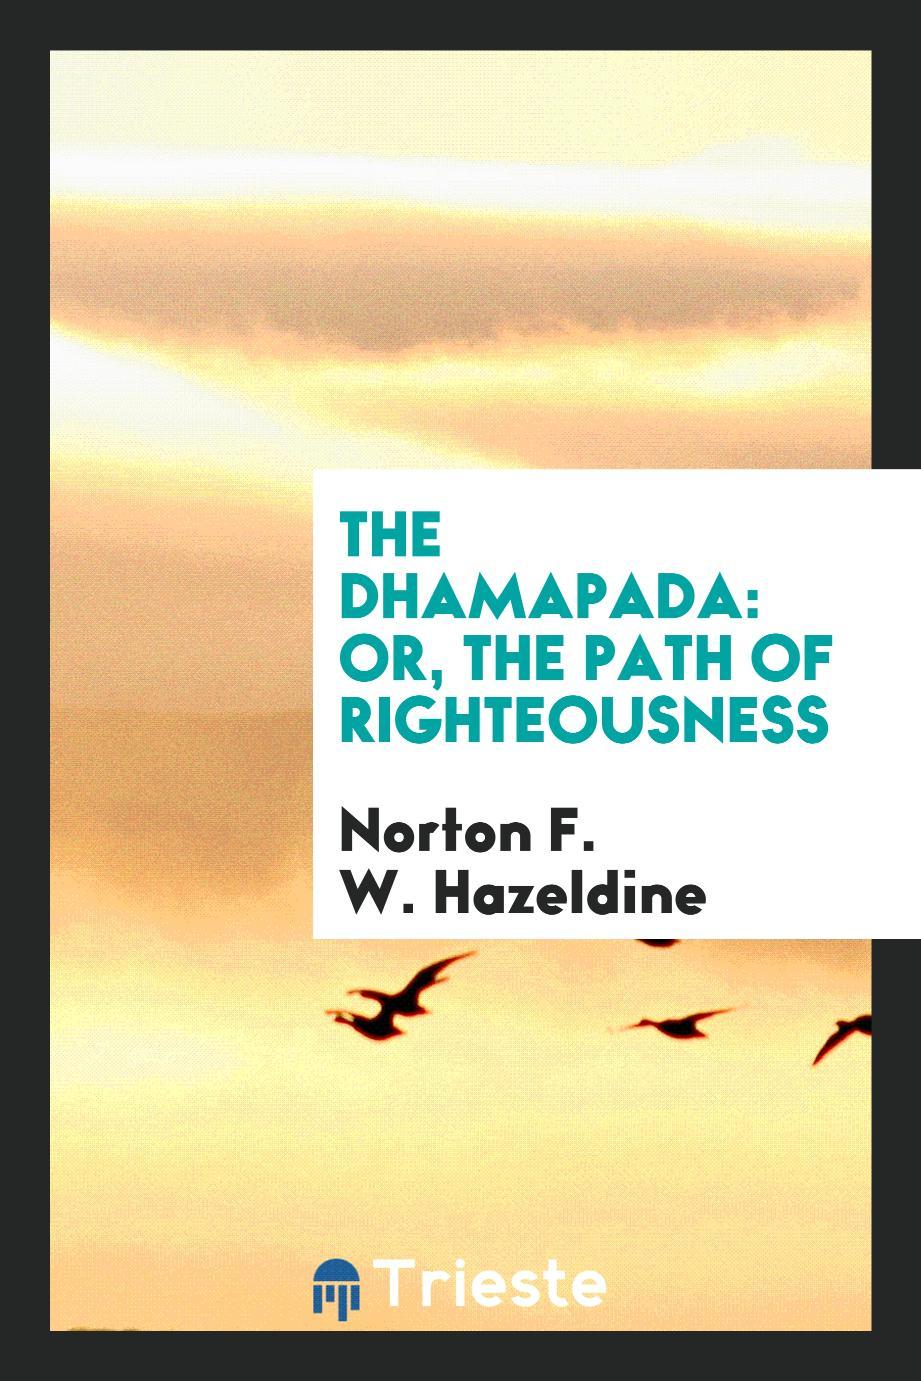 The Dhamapada: Or, The Path of Righteousness